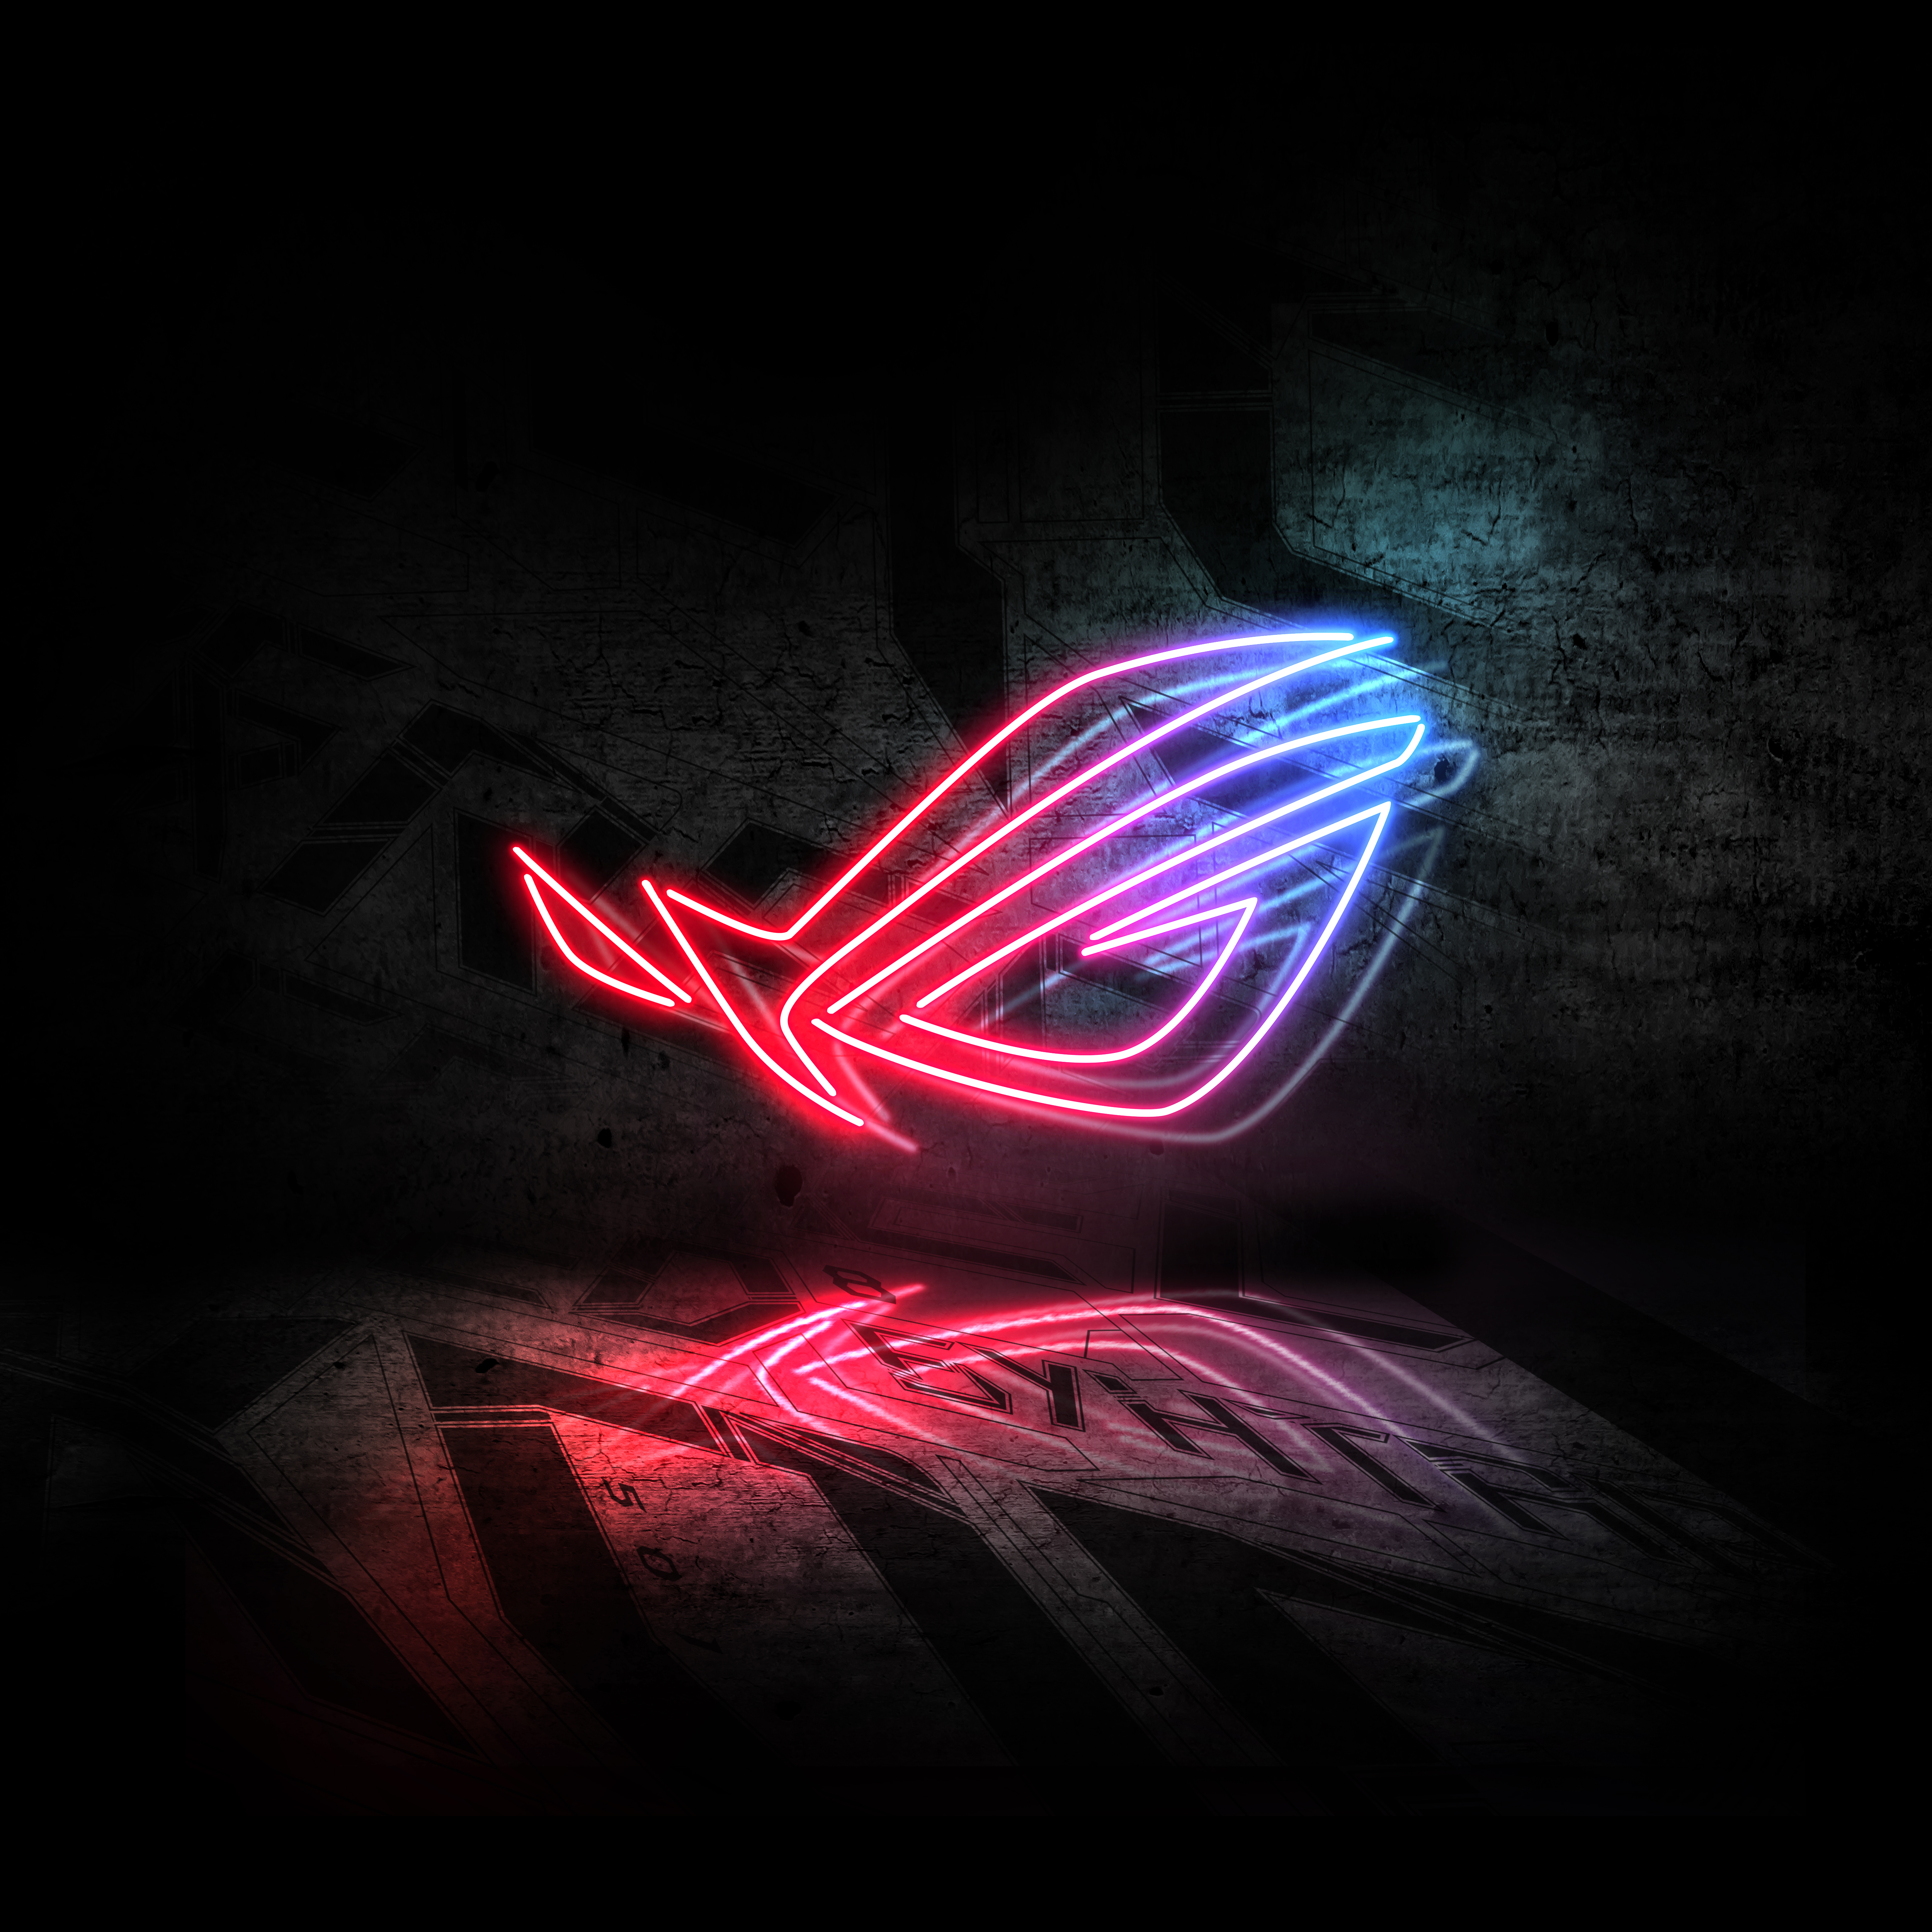 Hd Wallpapers For Logo: Rog Neon Logo 5k, HD Computer, 4k Wallpapers, Images